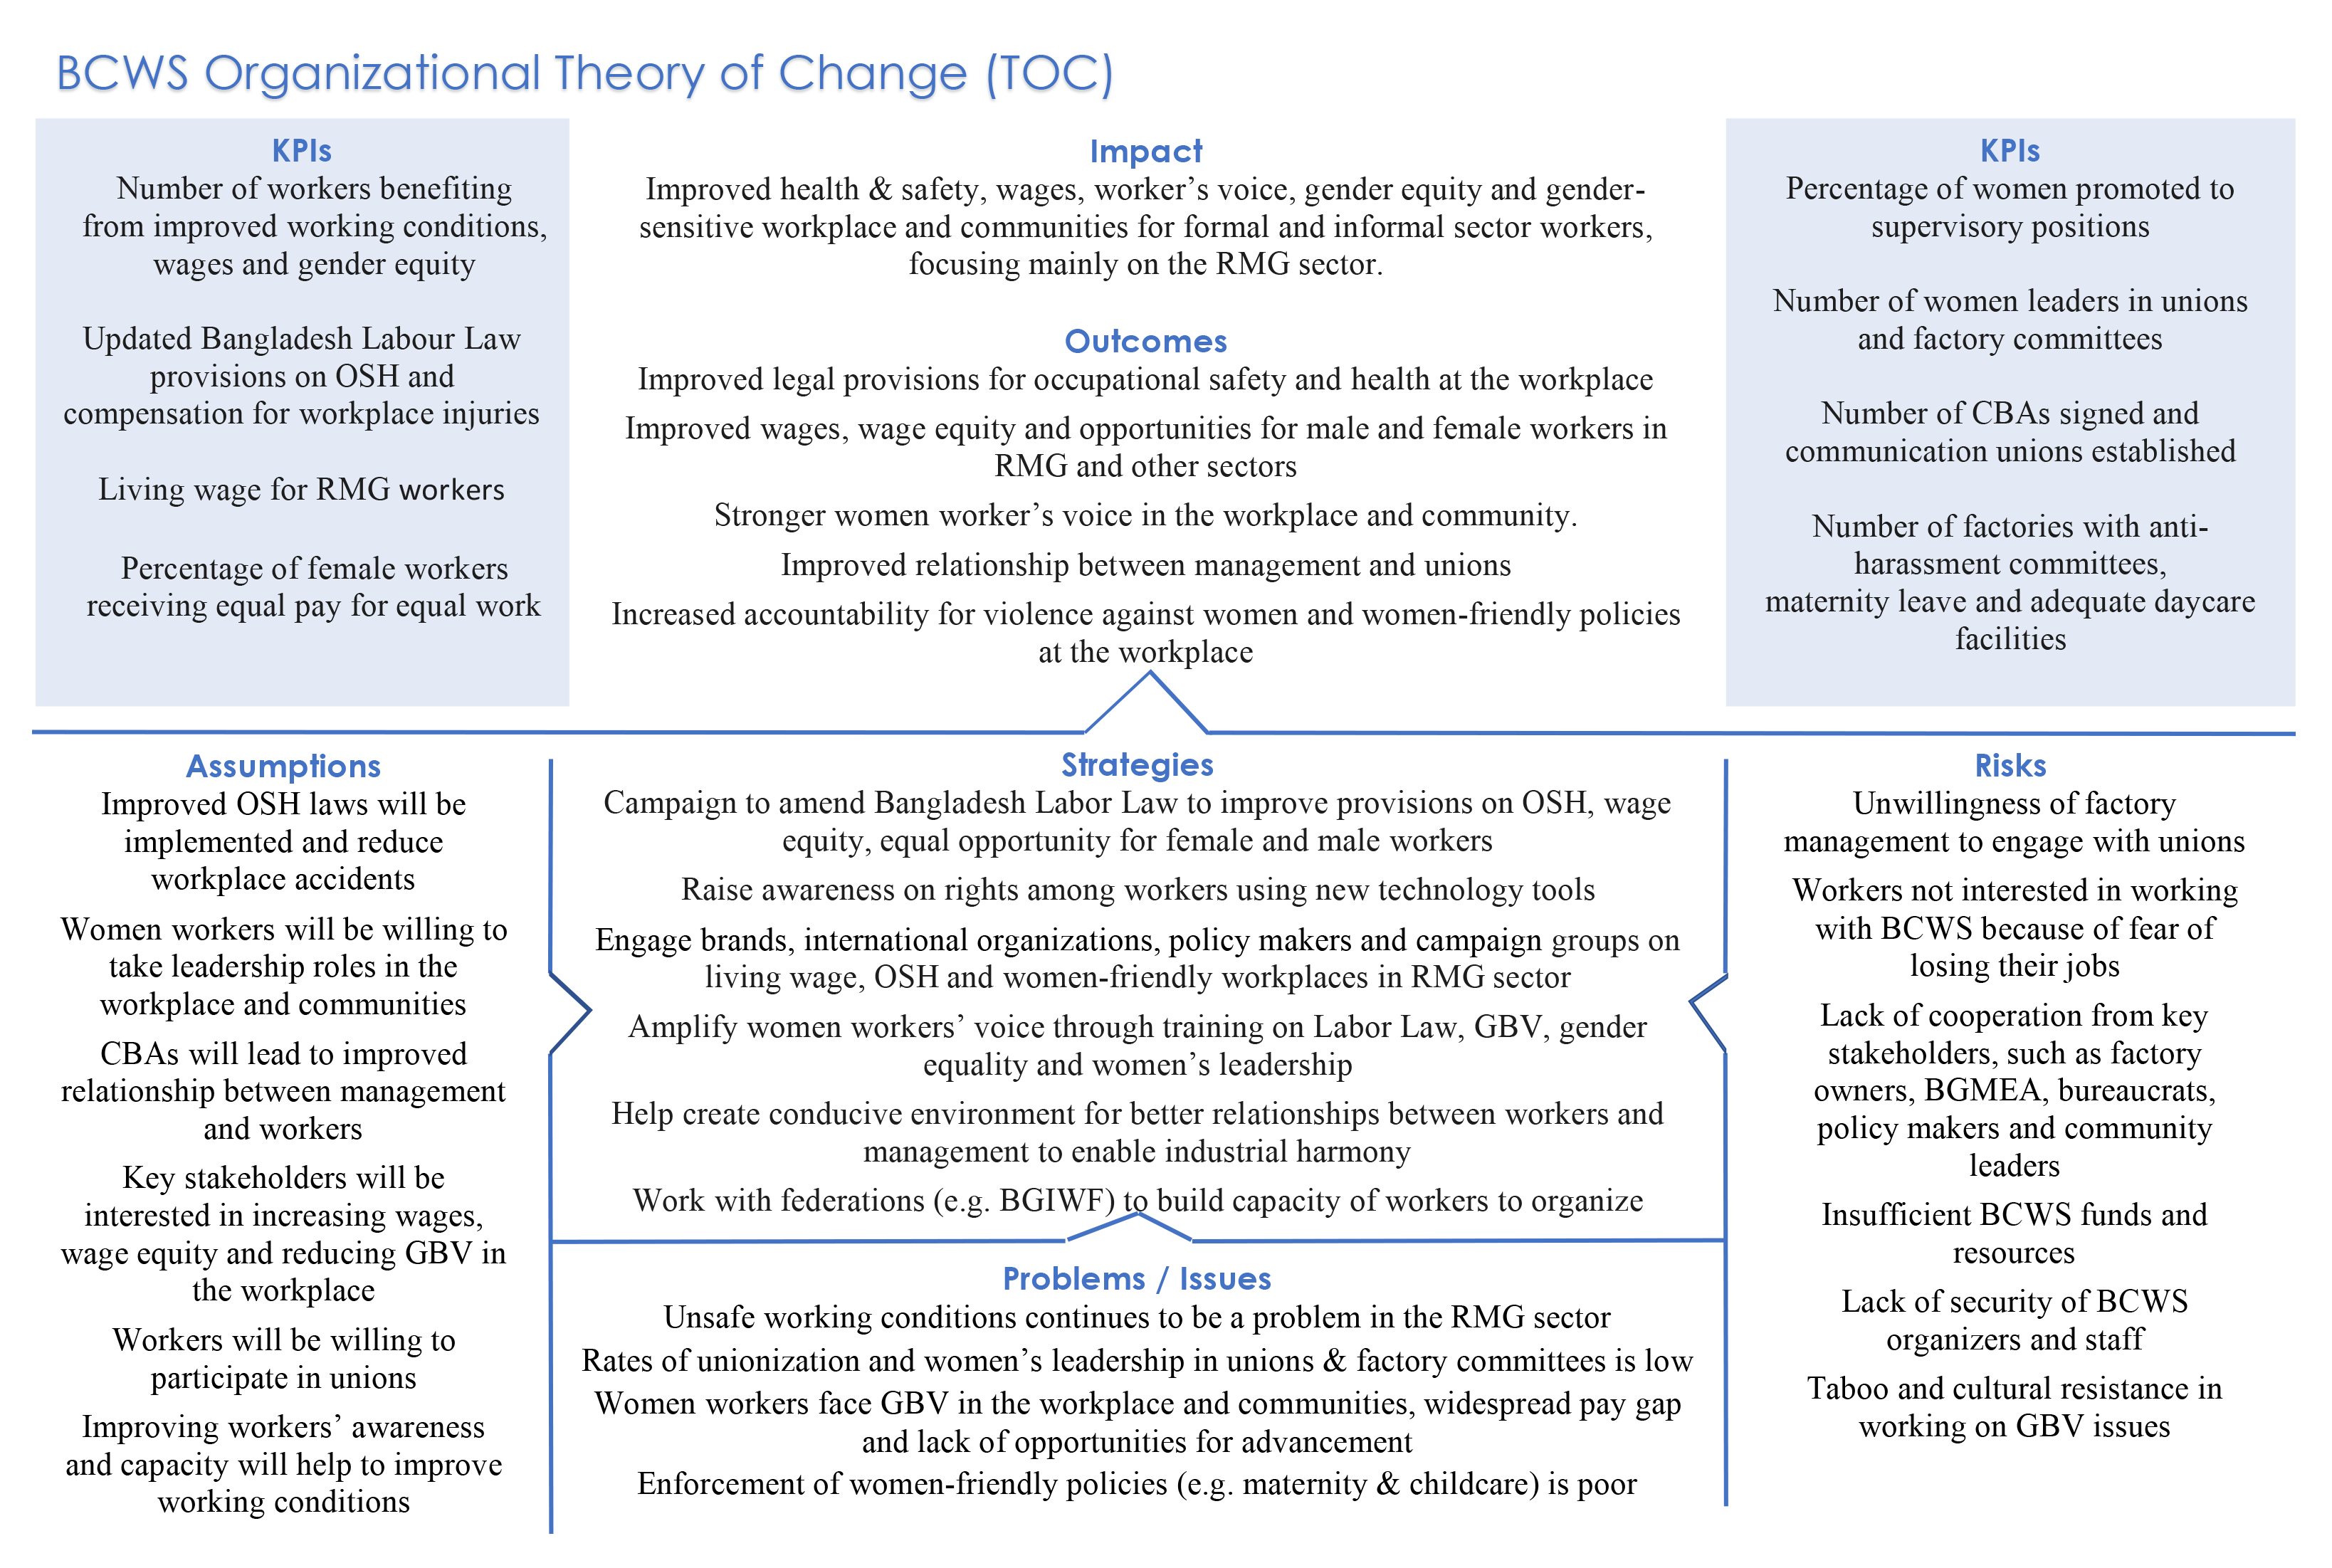 BCWS-Theory of change